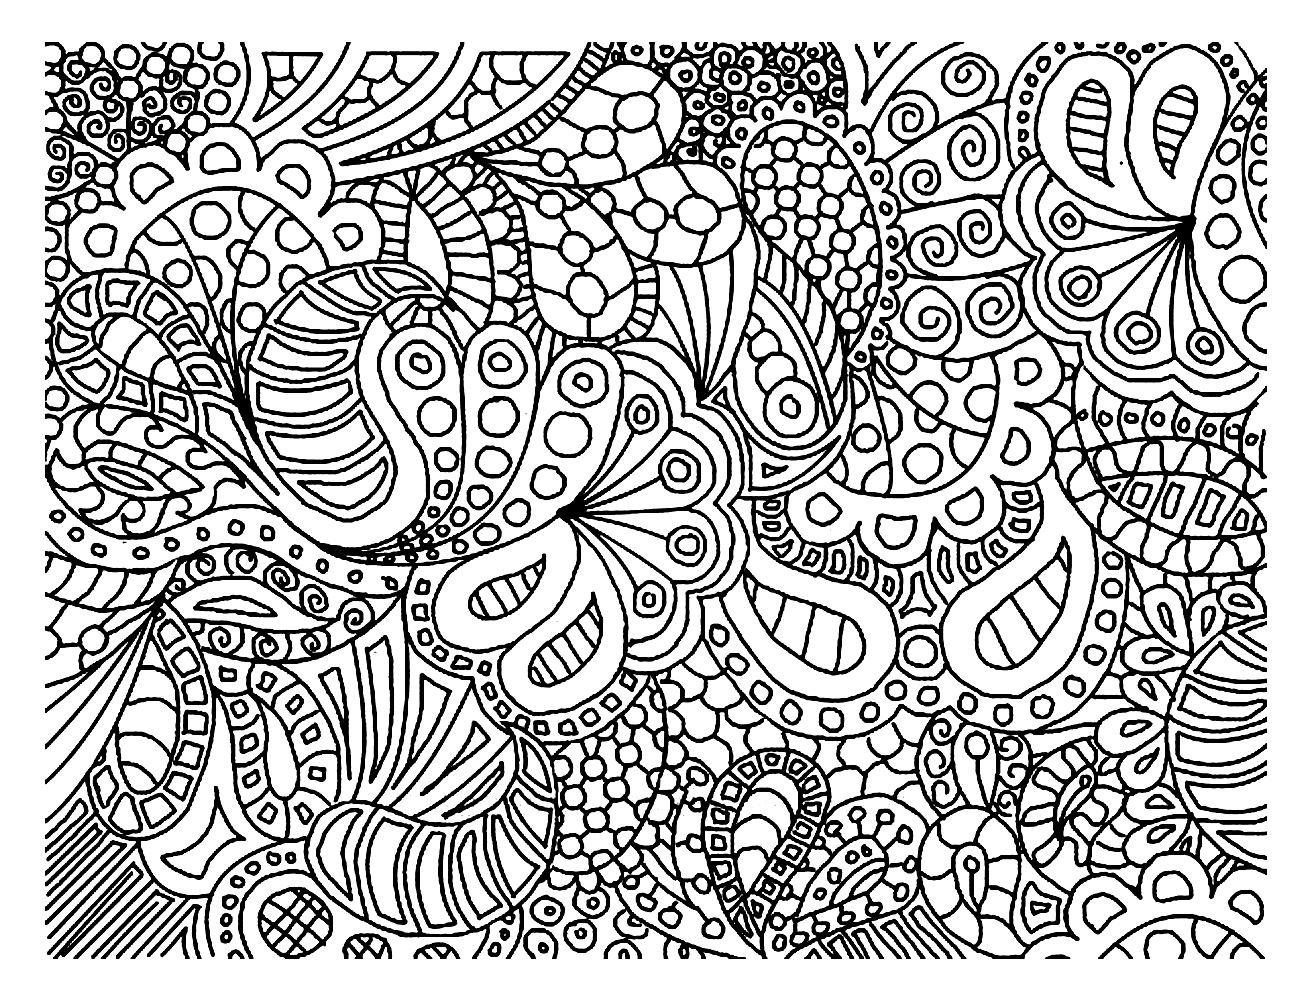 doodle coloring pages doodle art to print doodle art kids coloring pages pages coloring doodle